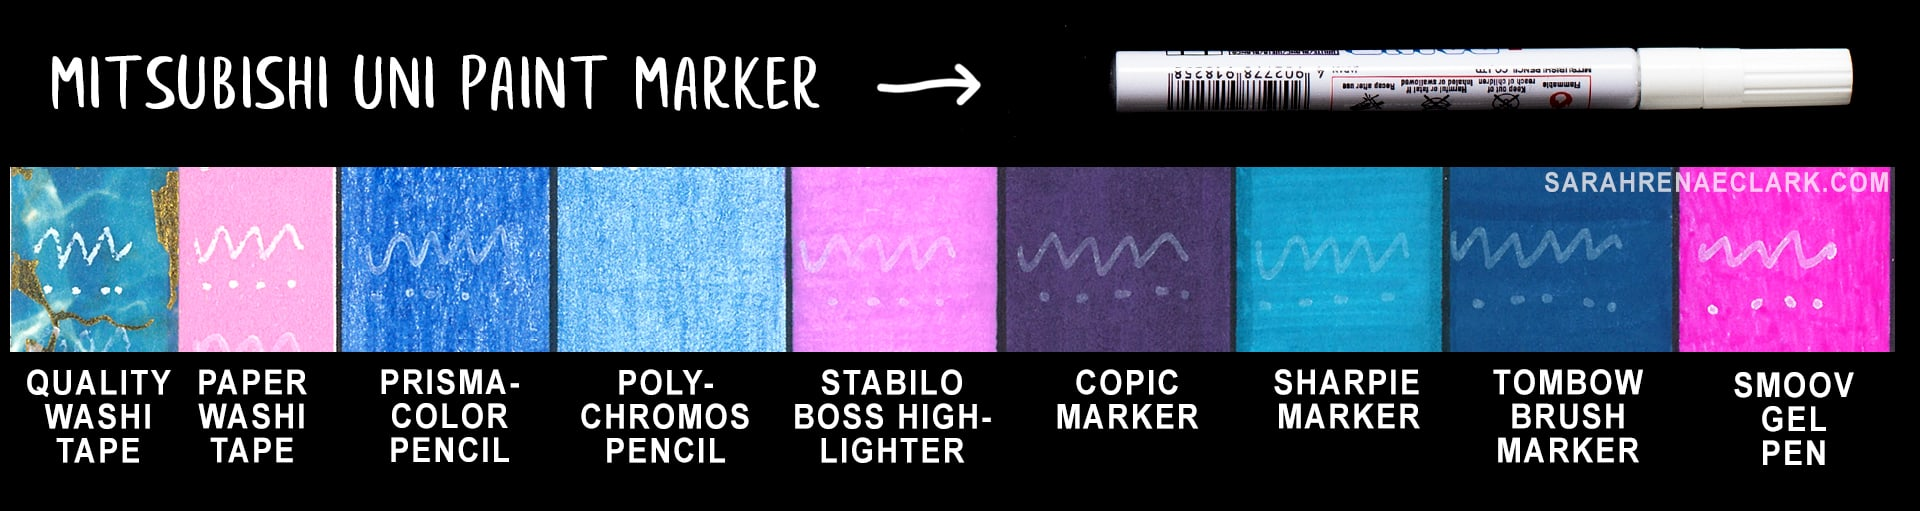 Mistubishi Uni Paint Marker Review